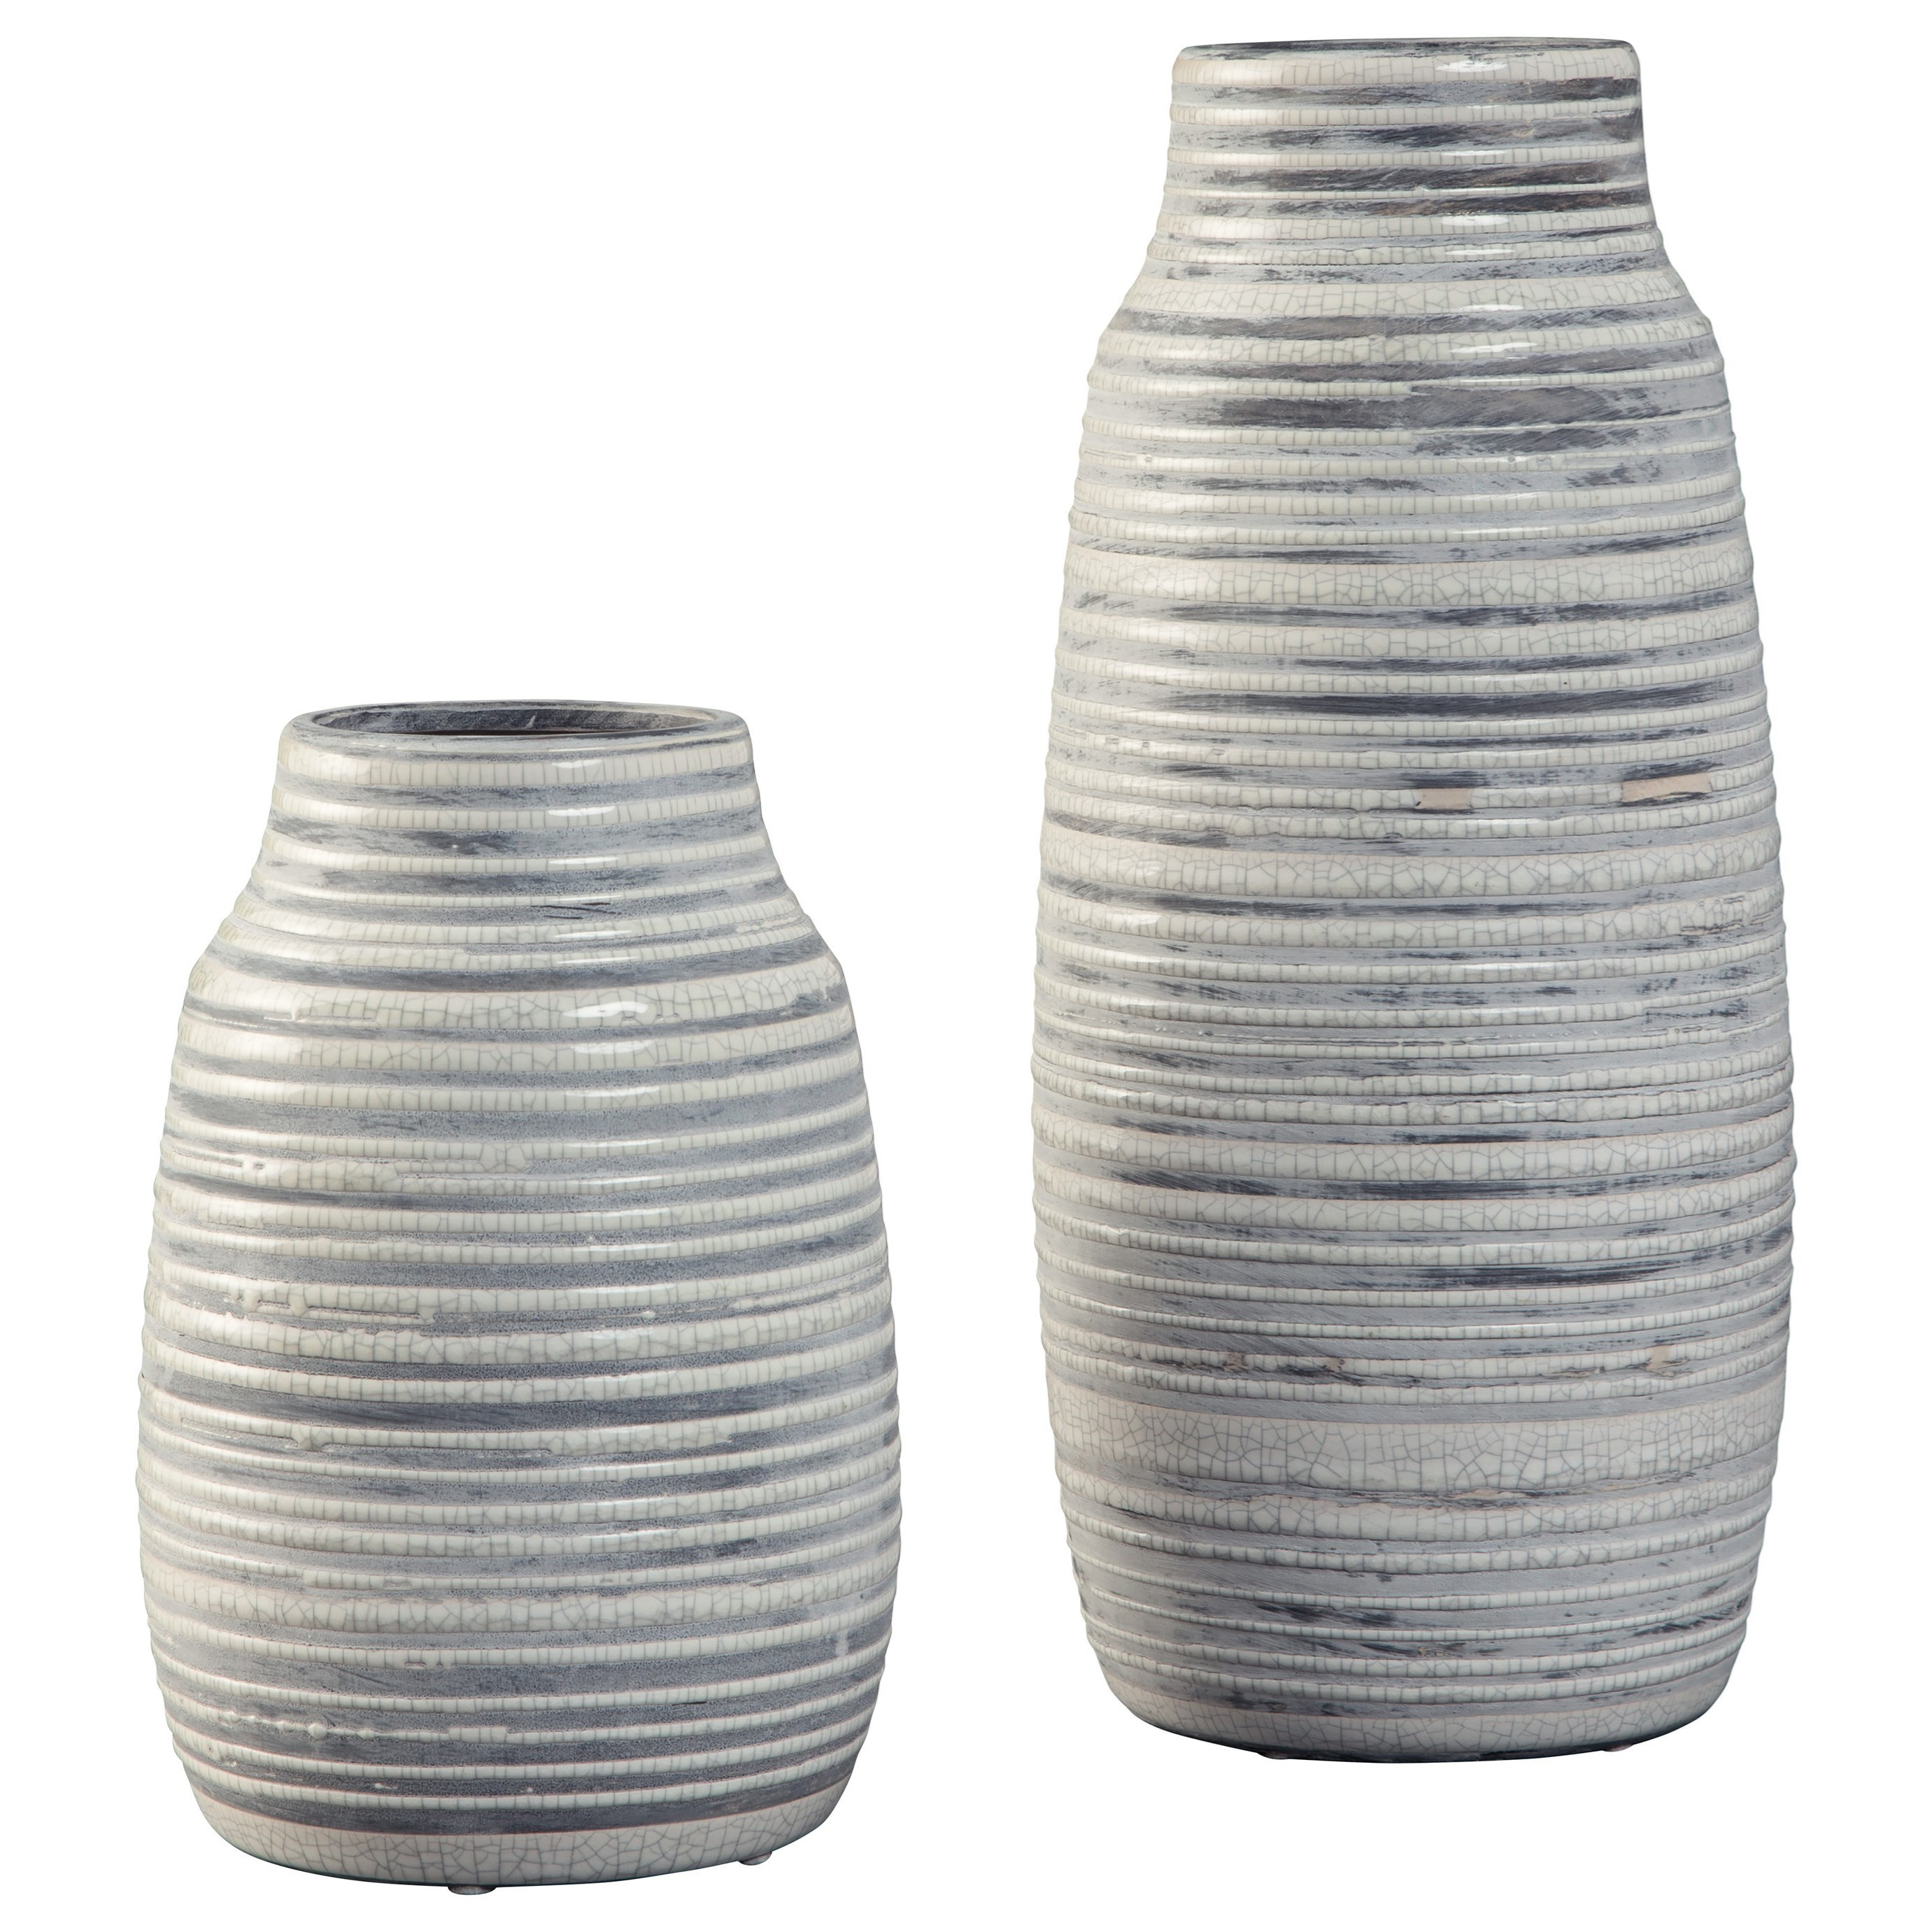 Accents Donaver Gray/White Vase Set by Signature Design by Ashley at Northeast Factory Direct